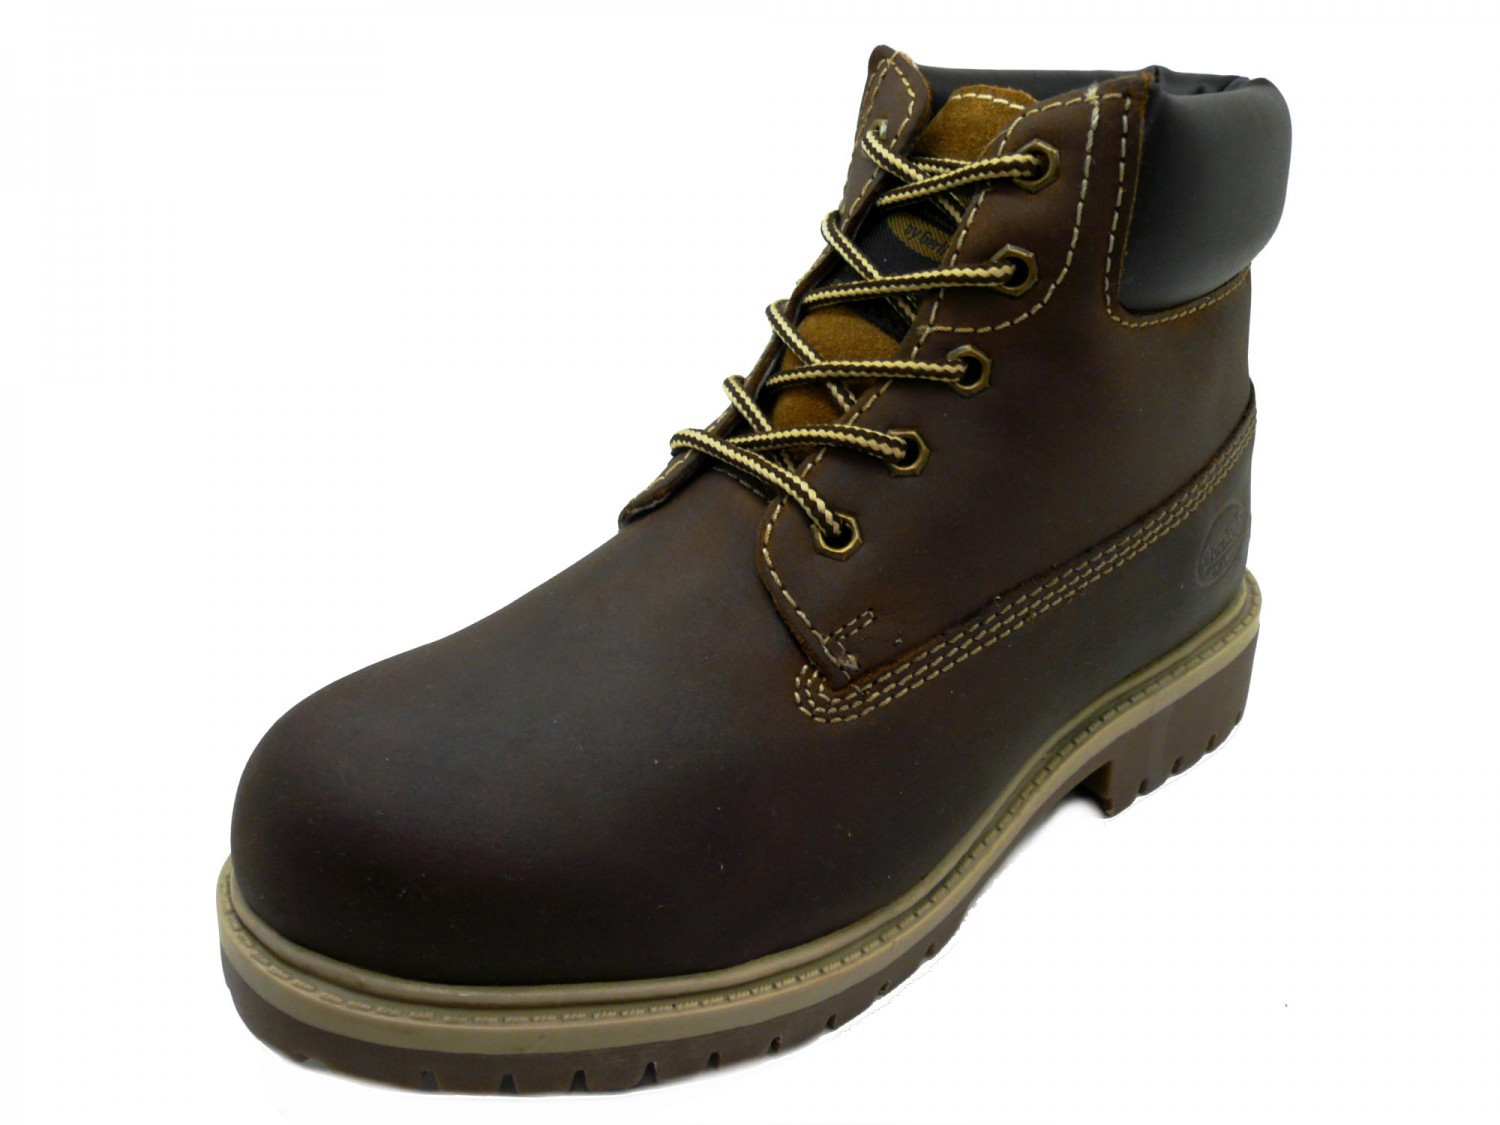 dockers by gerli 358402 damen unisex desert boots stiefel braun ebay. Black Bedroom Furniture Sets. Home Design Ideas